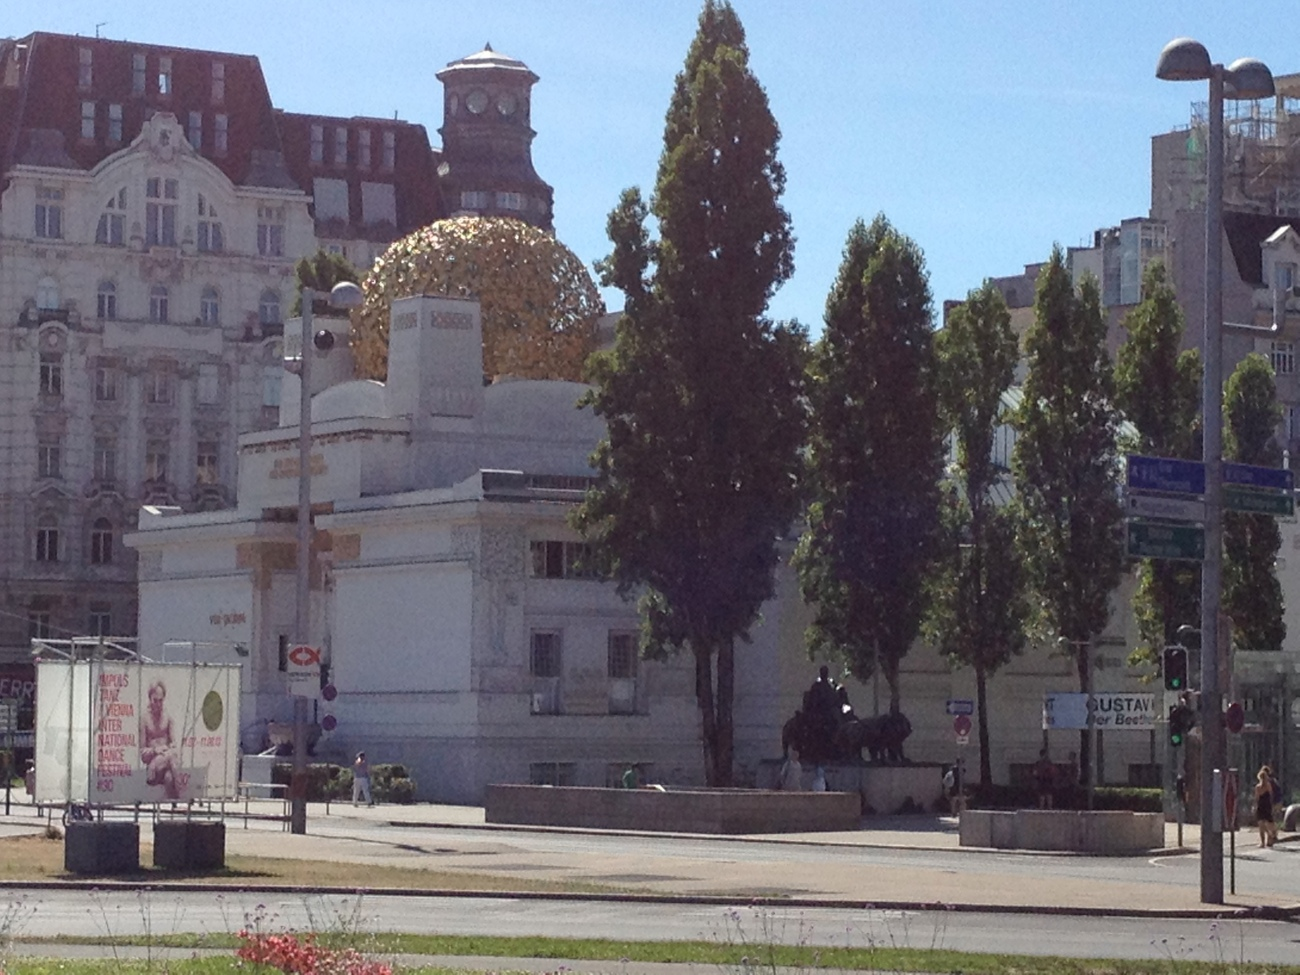 The golden dome was designed by Klimt.